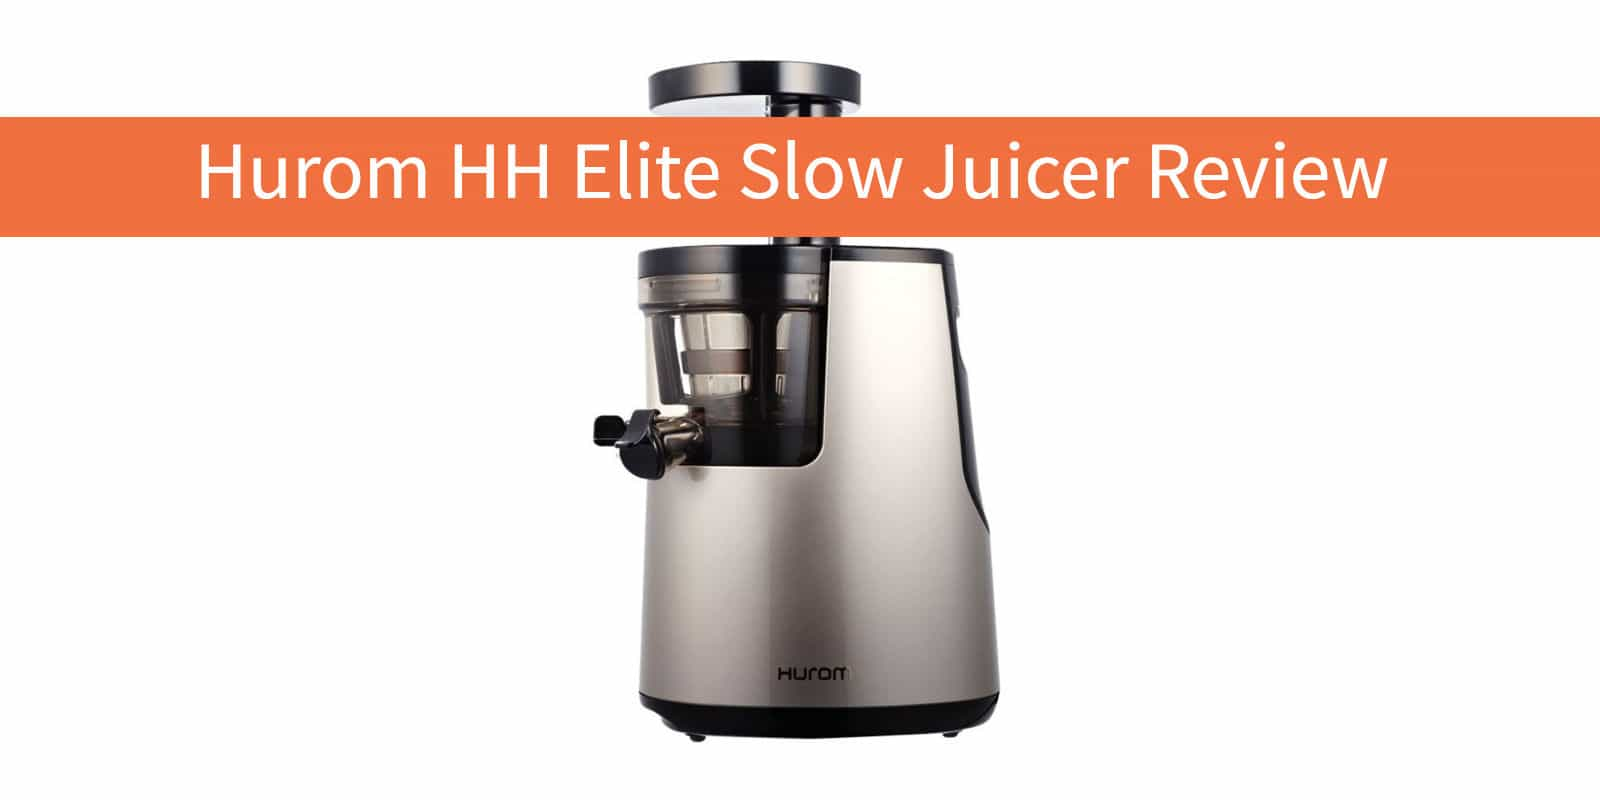 Review On Hurom Slow Juicer : Hurom HH Elite Slow Juicer Review (2018) vegByte